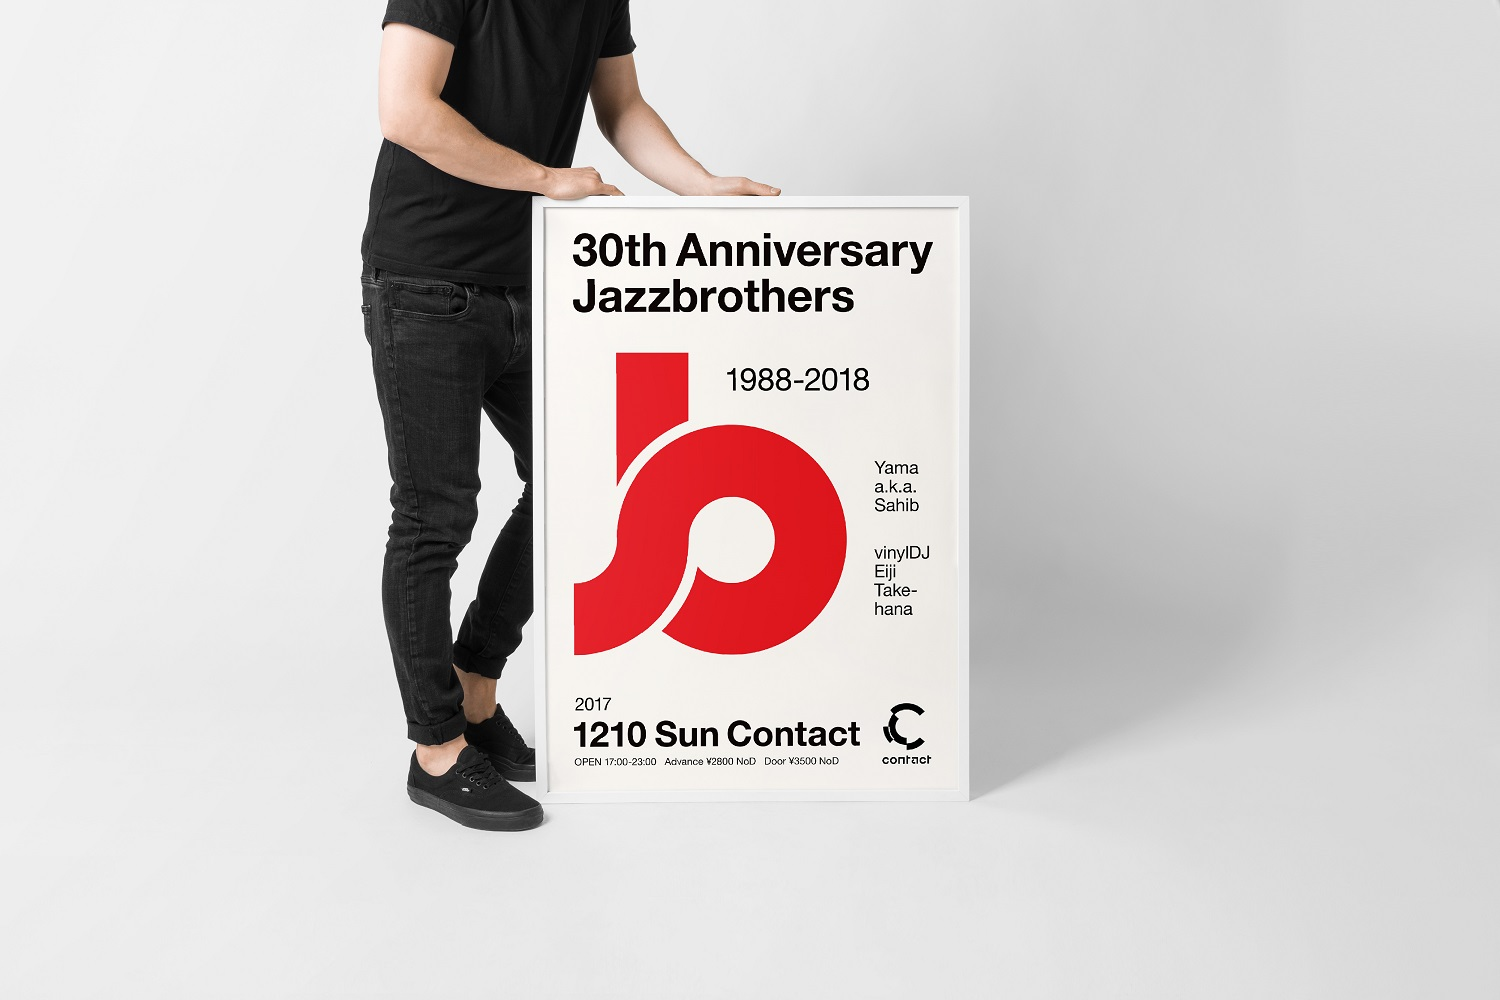 Jazzbrothers 30th Anniversary